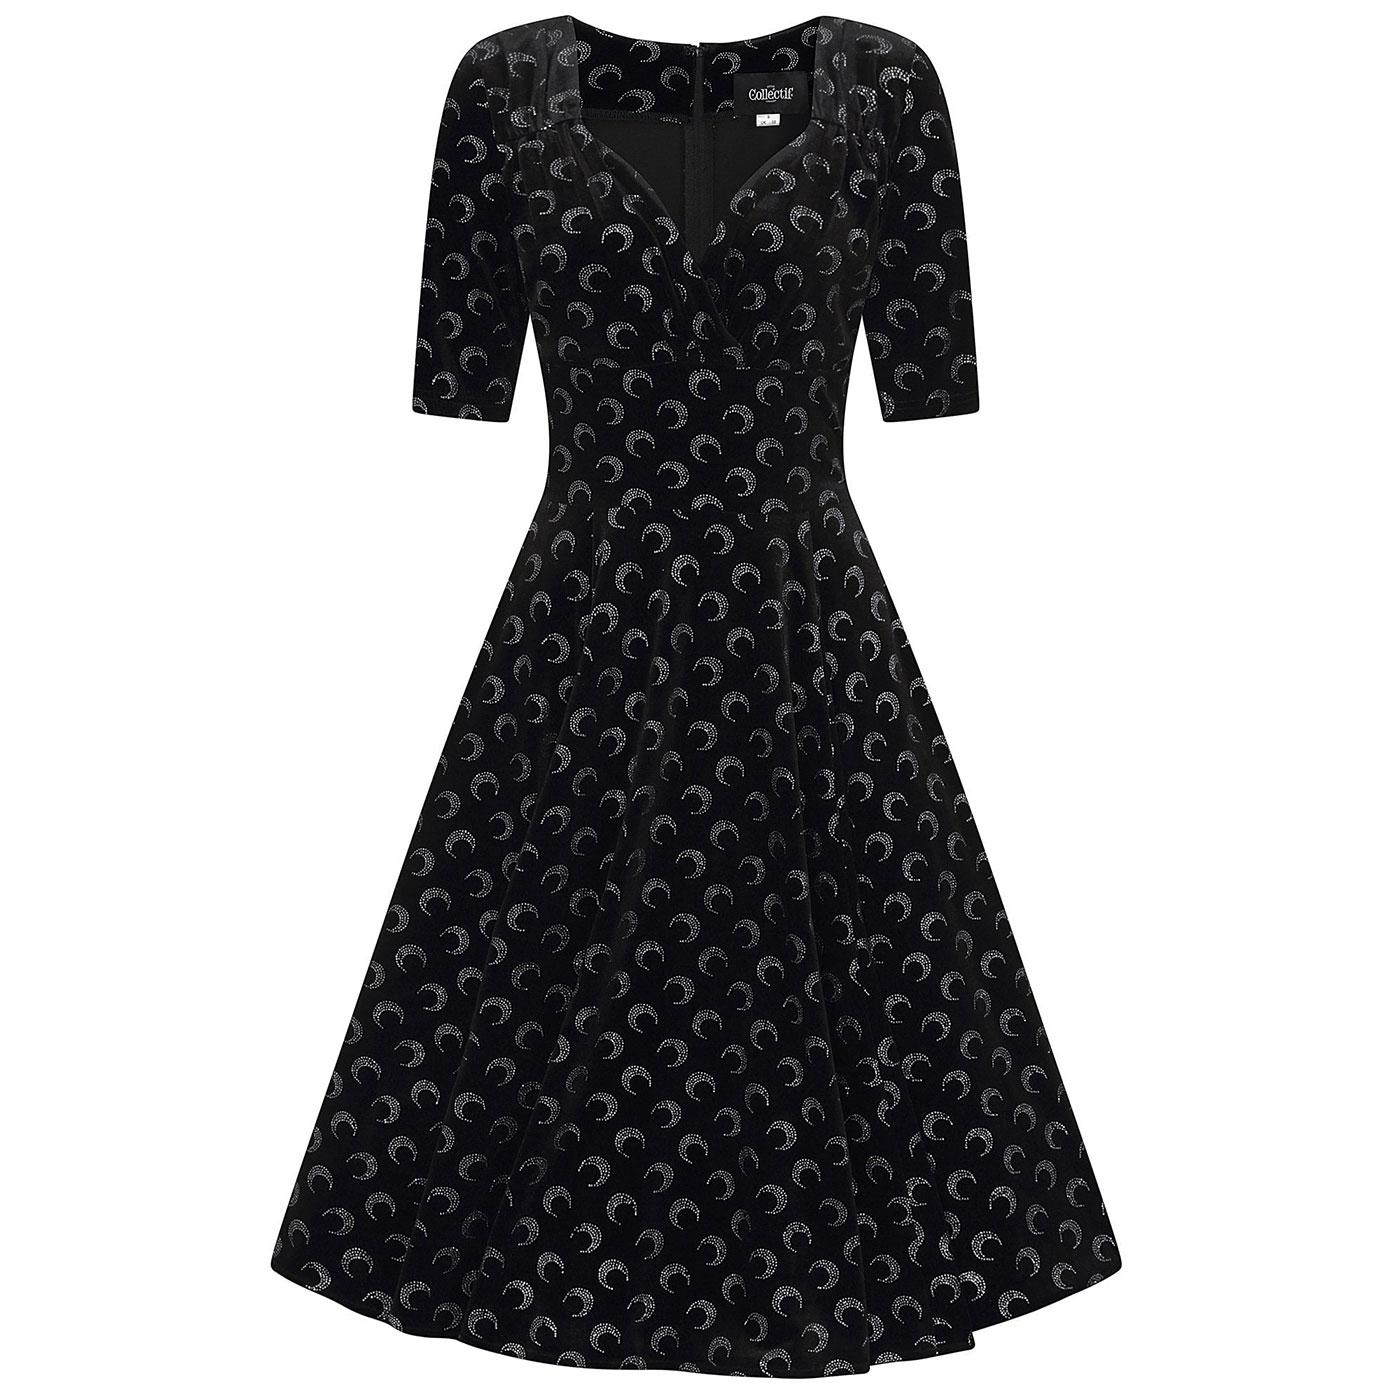 Trixie COLLECTIF Glitter Moon Velvet Swing Dress